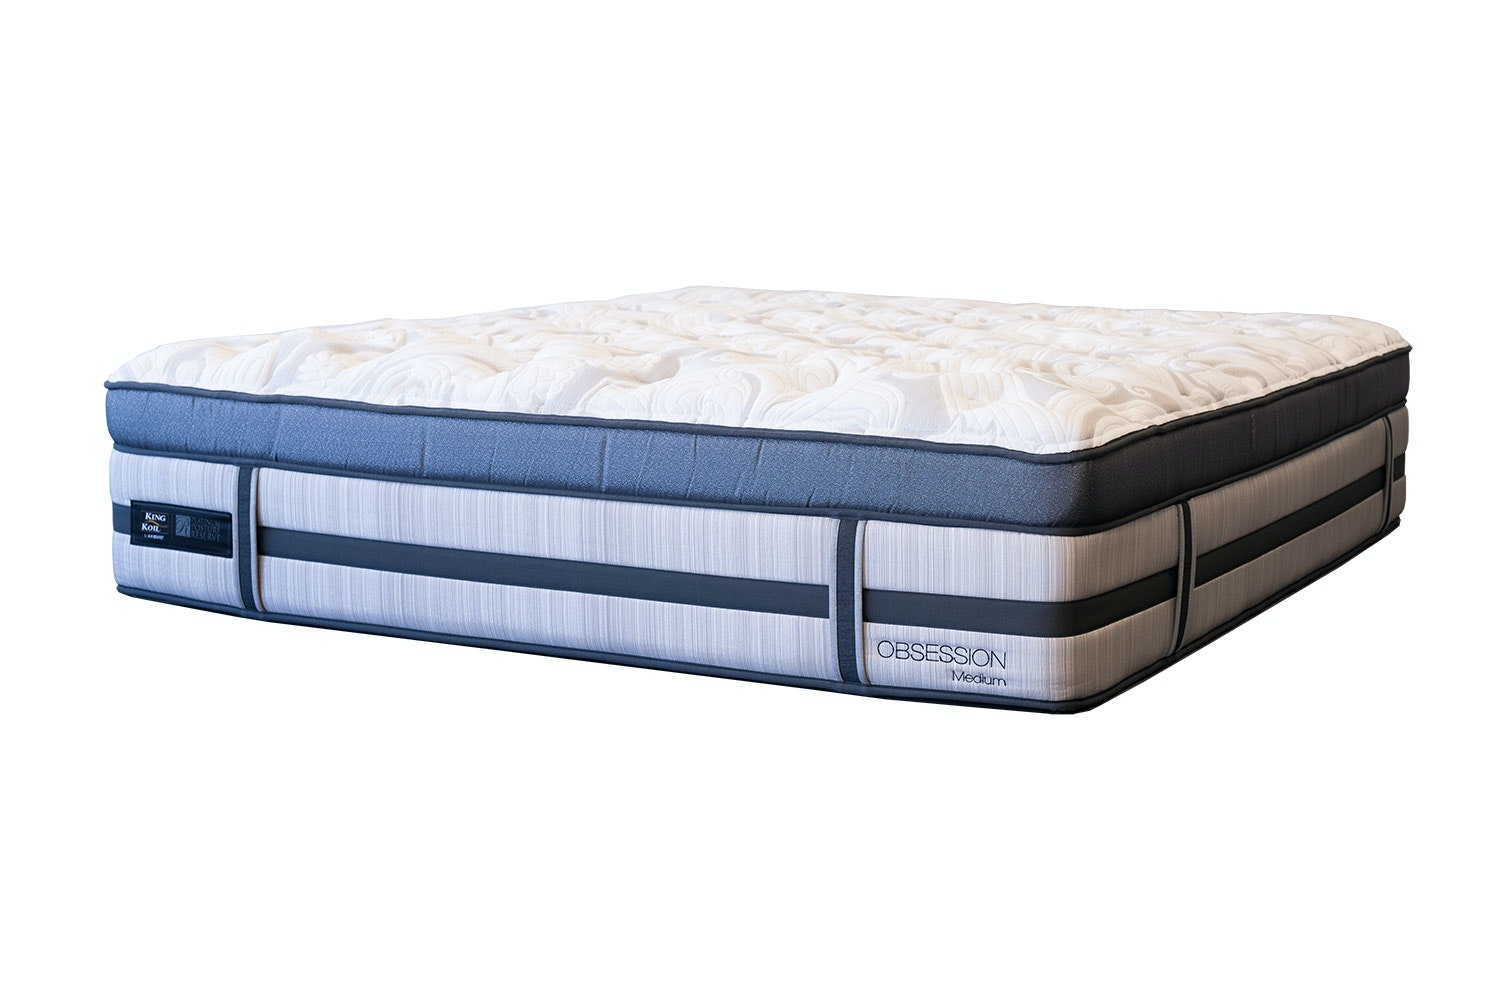 Obsession Medium Super King Mattress by King Koil